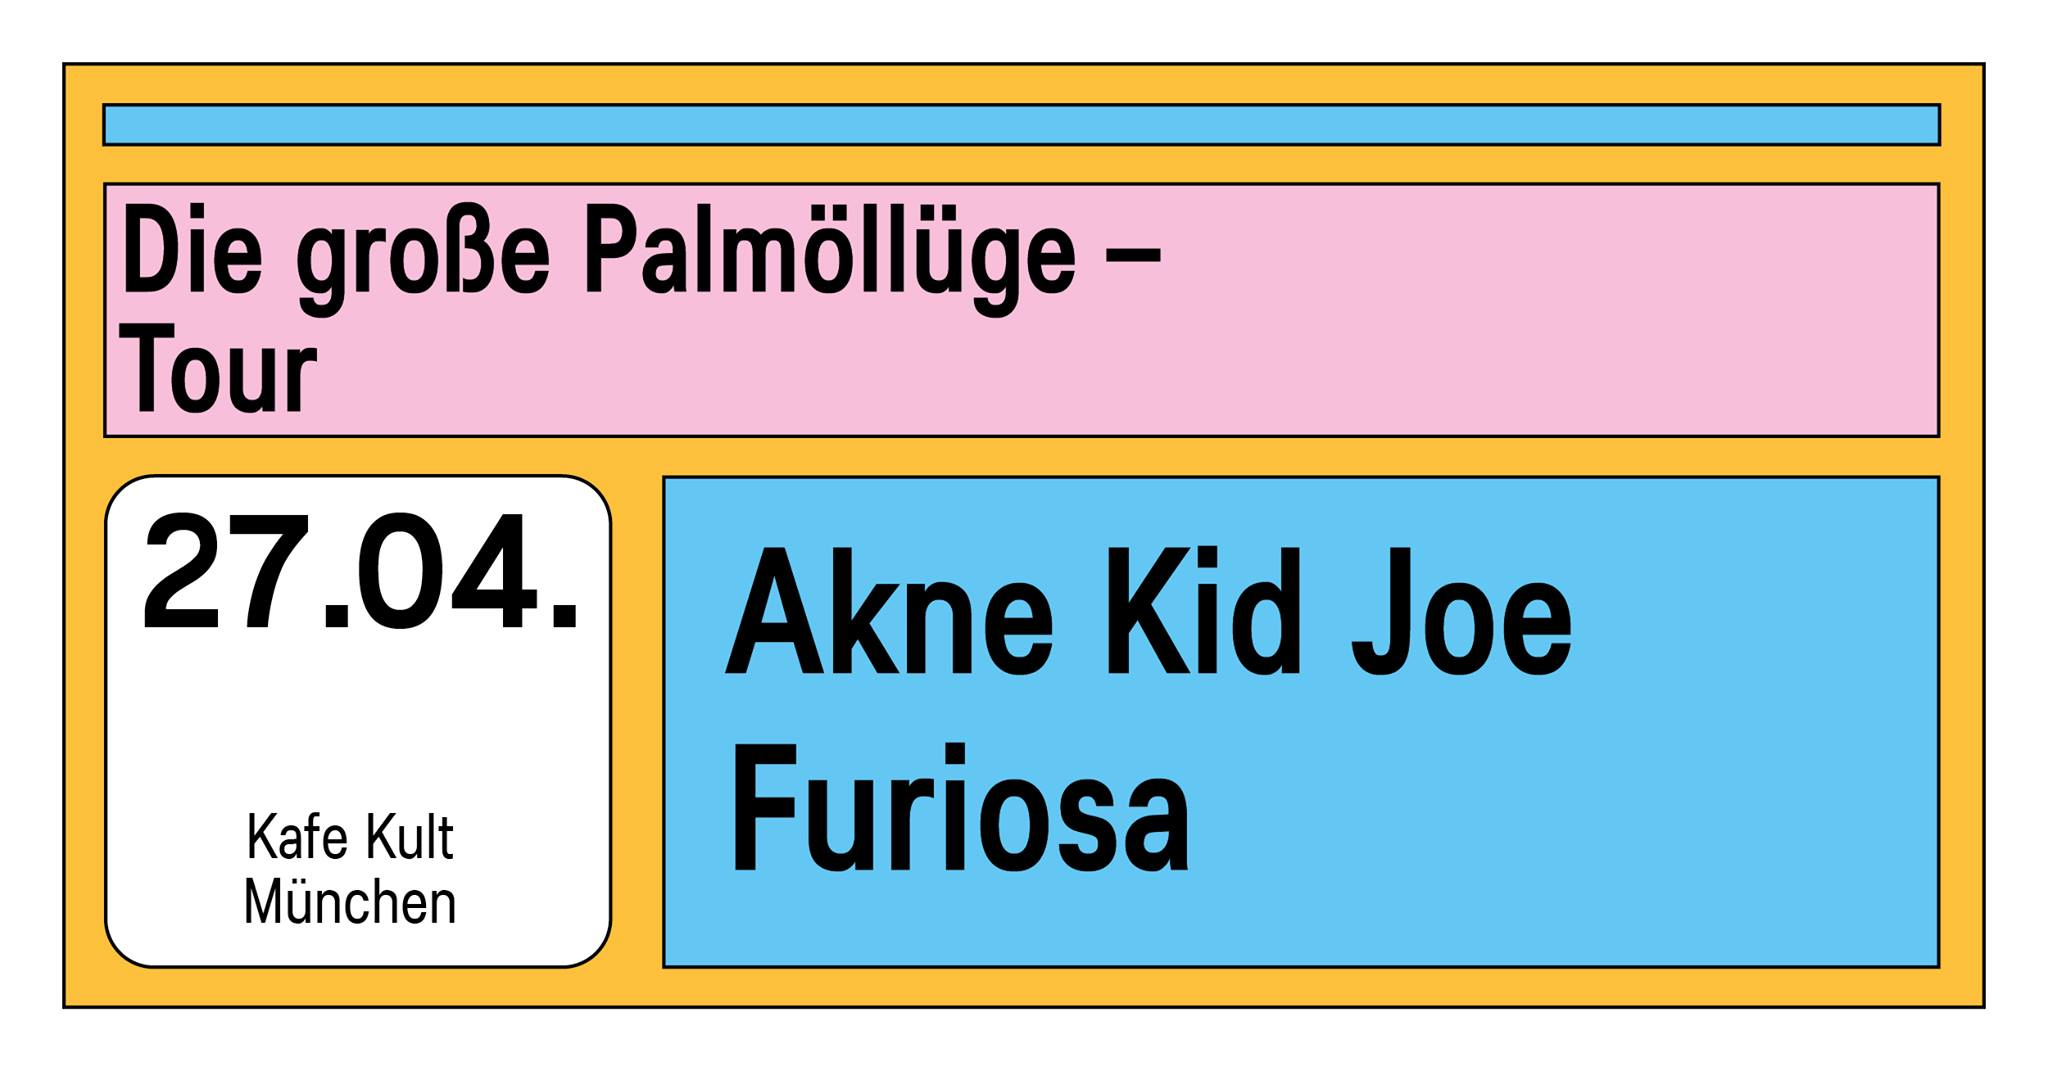 AKNE KID JOE + FURIOSA